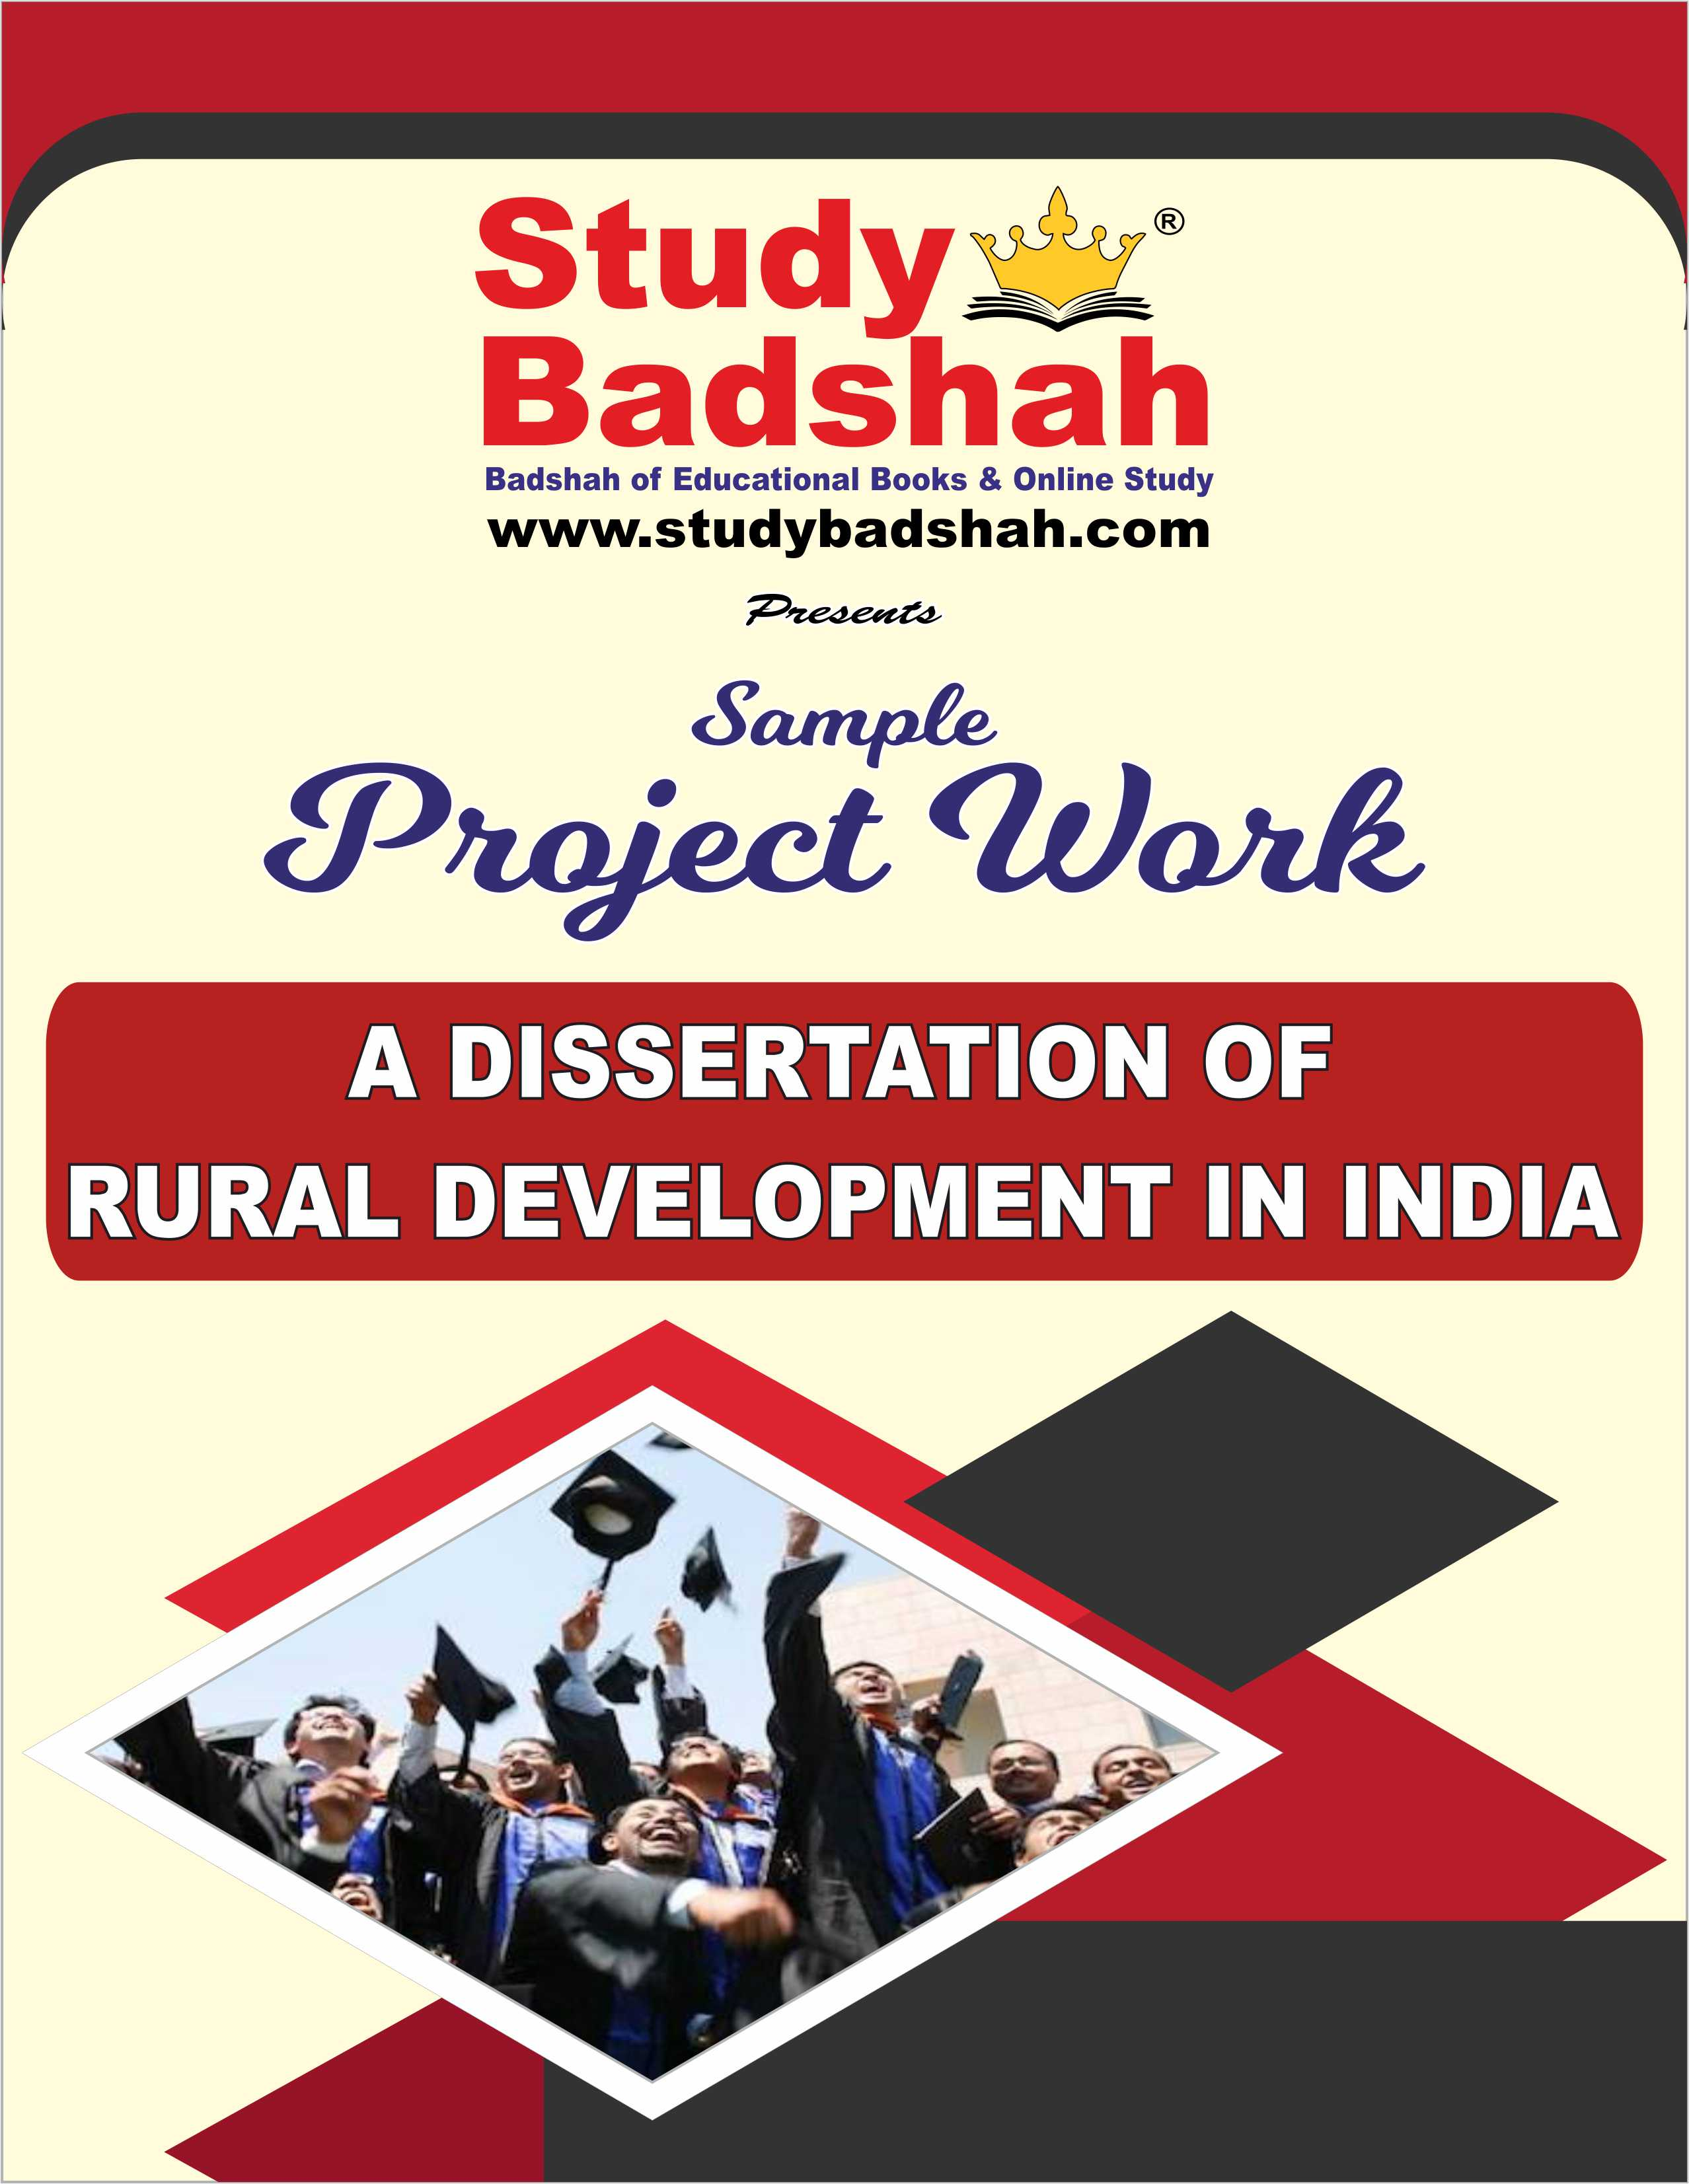 A DISSERTATION OF RURAL DEVELOPMENT IN INDIA